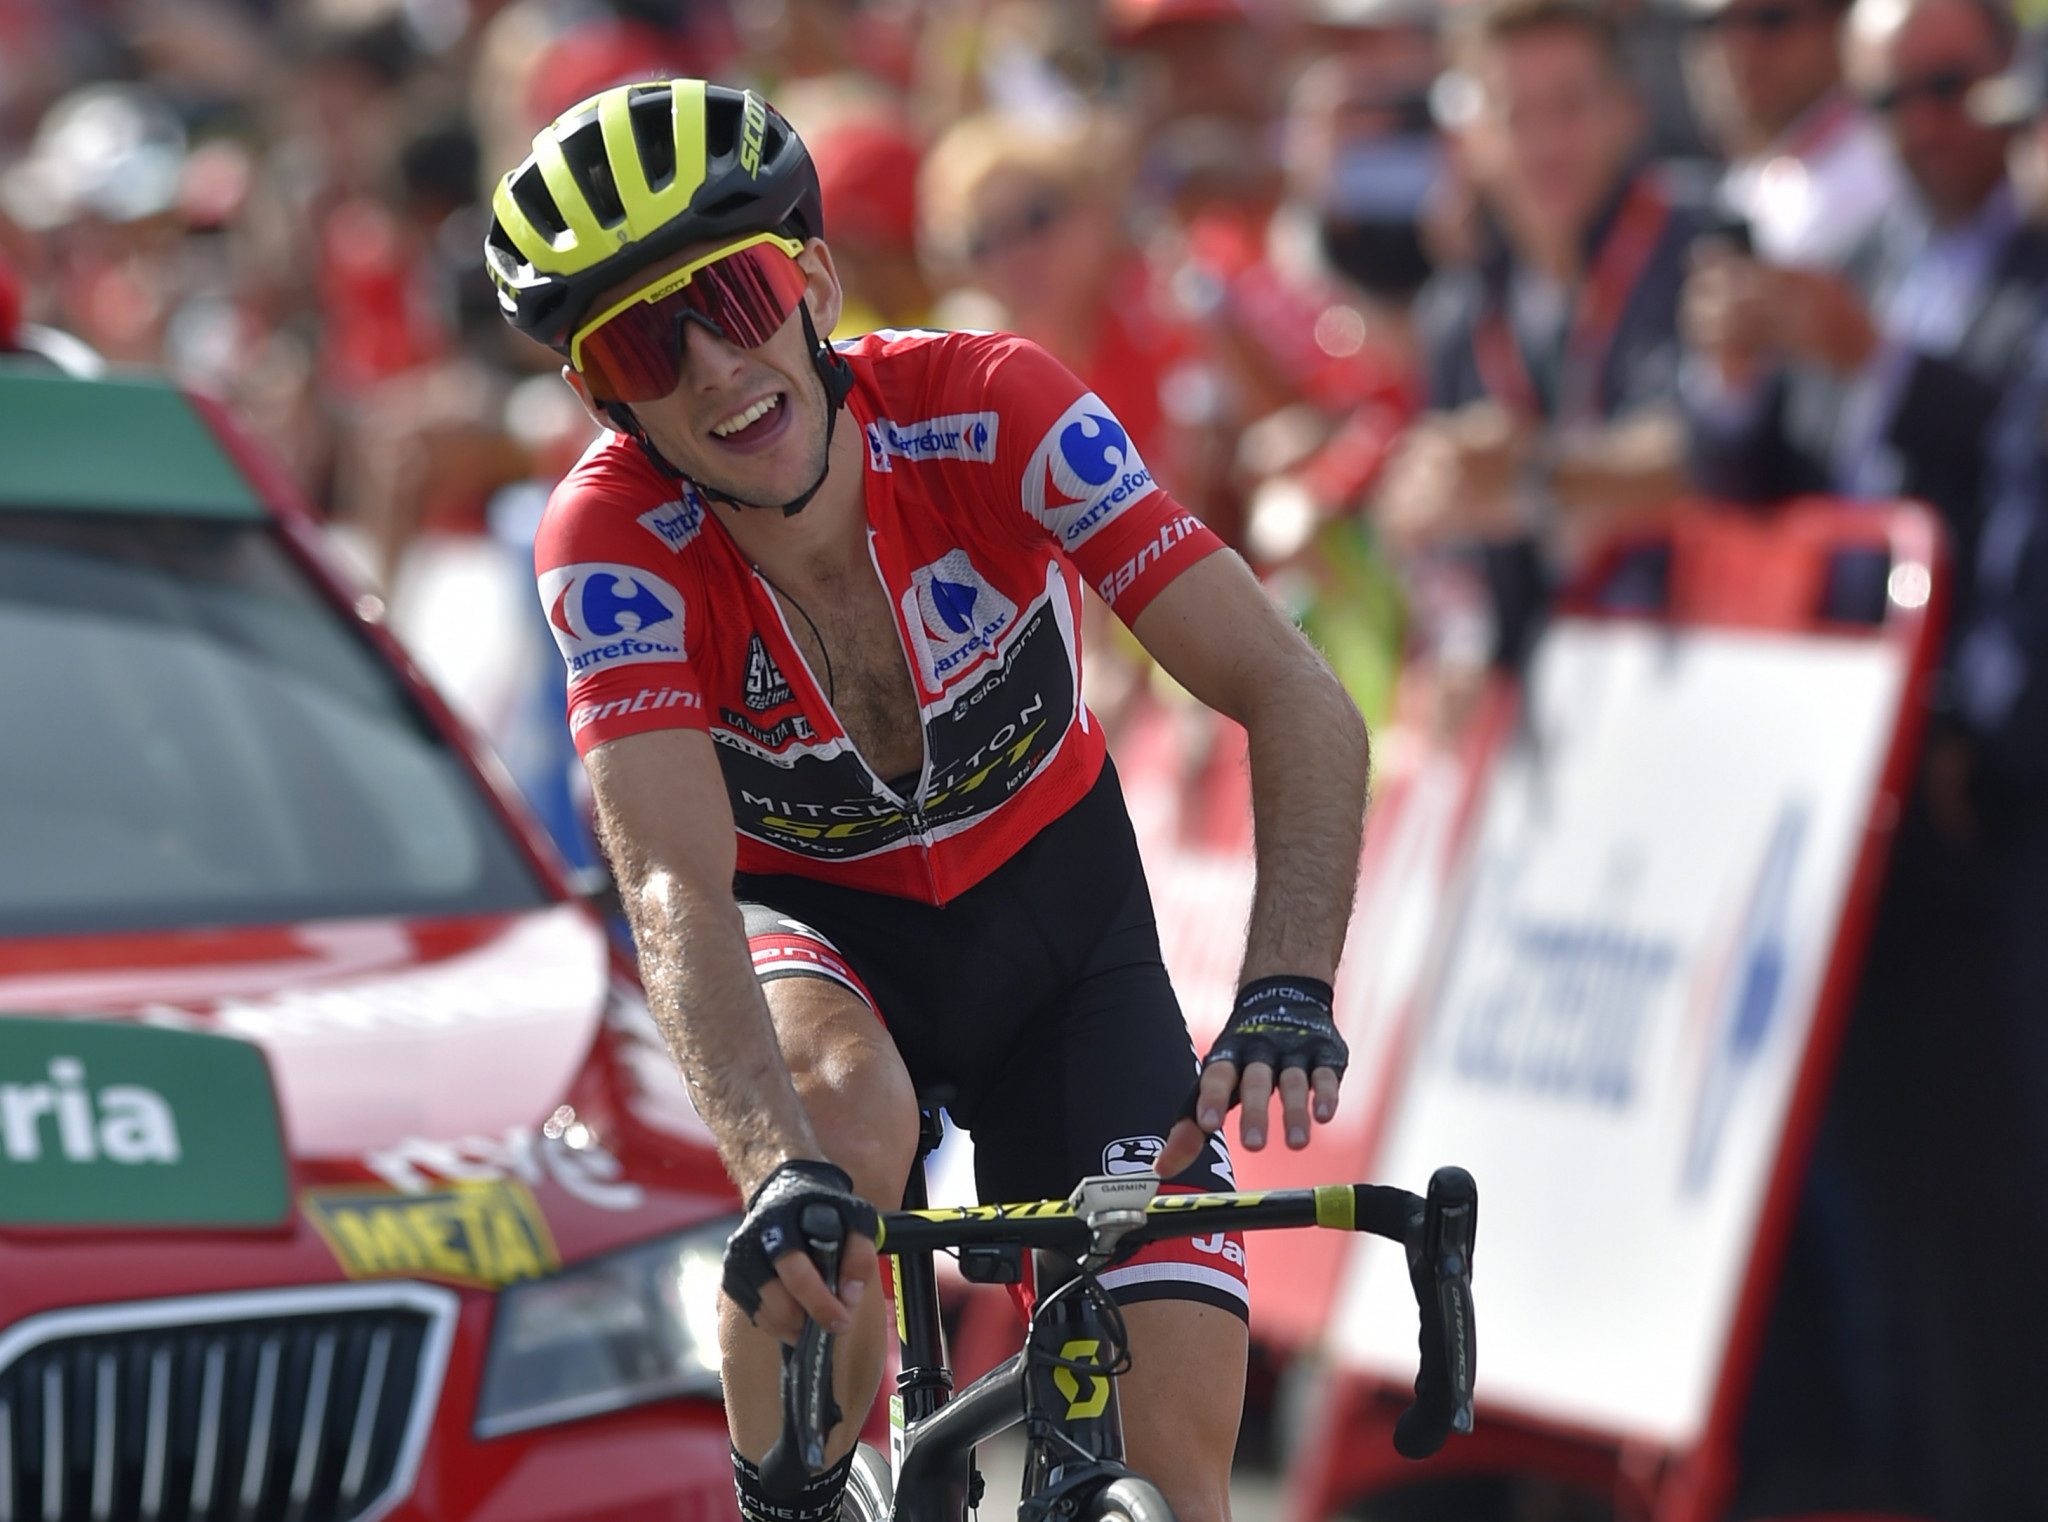 Yates on verge of Vuelta a España win after second place finish on stage 19